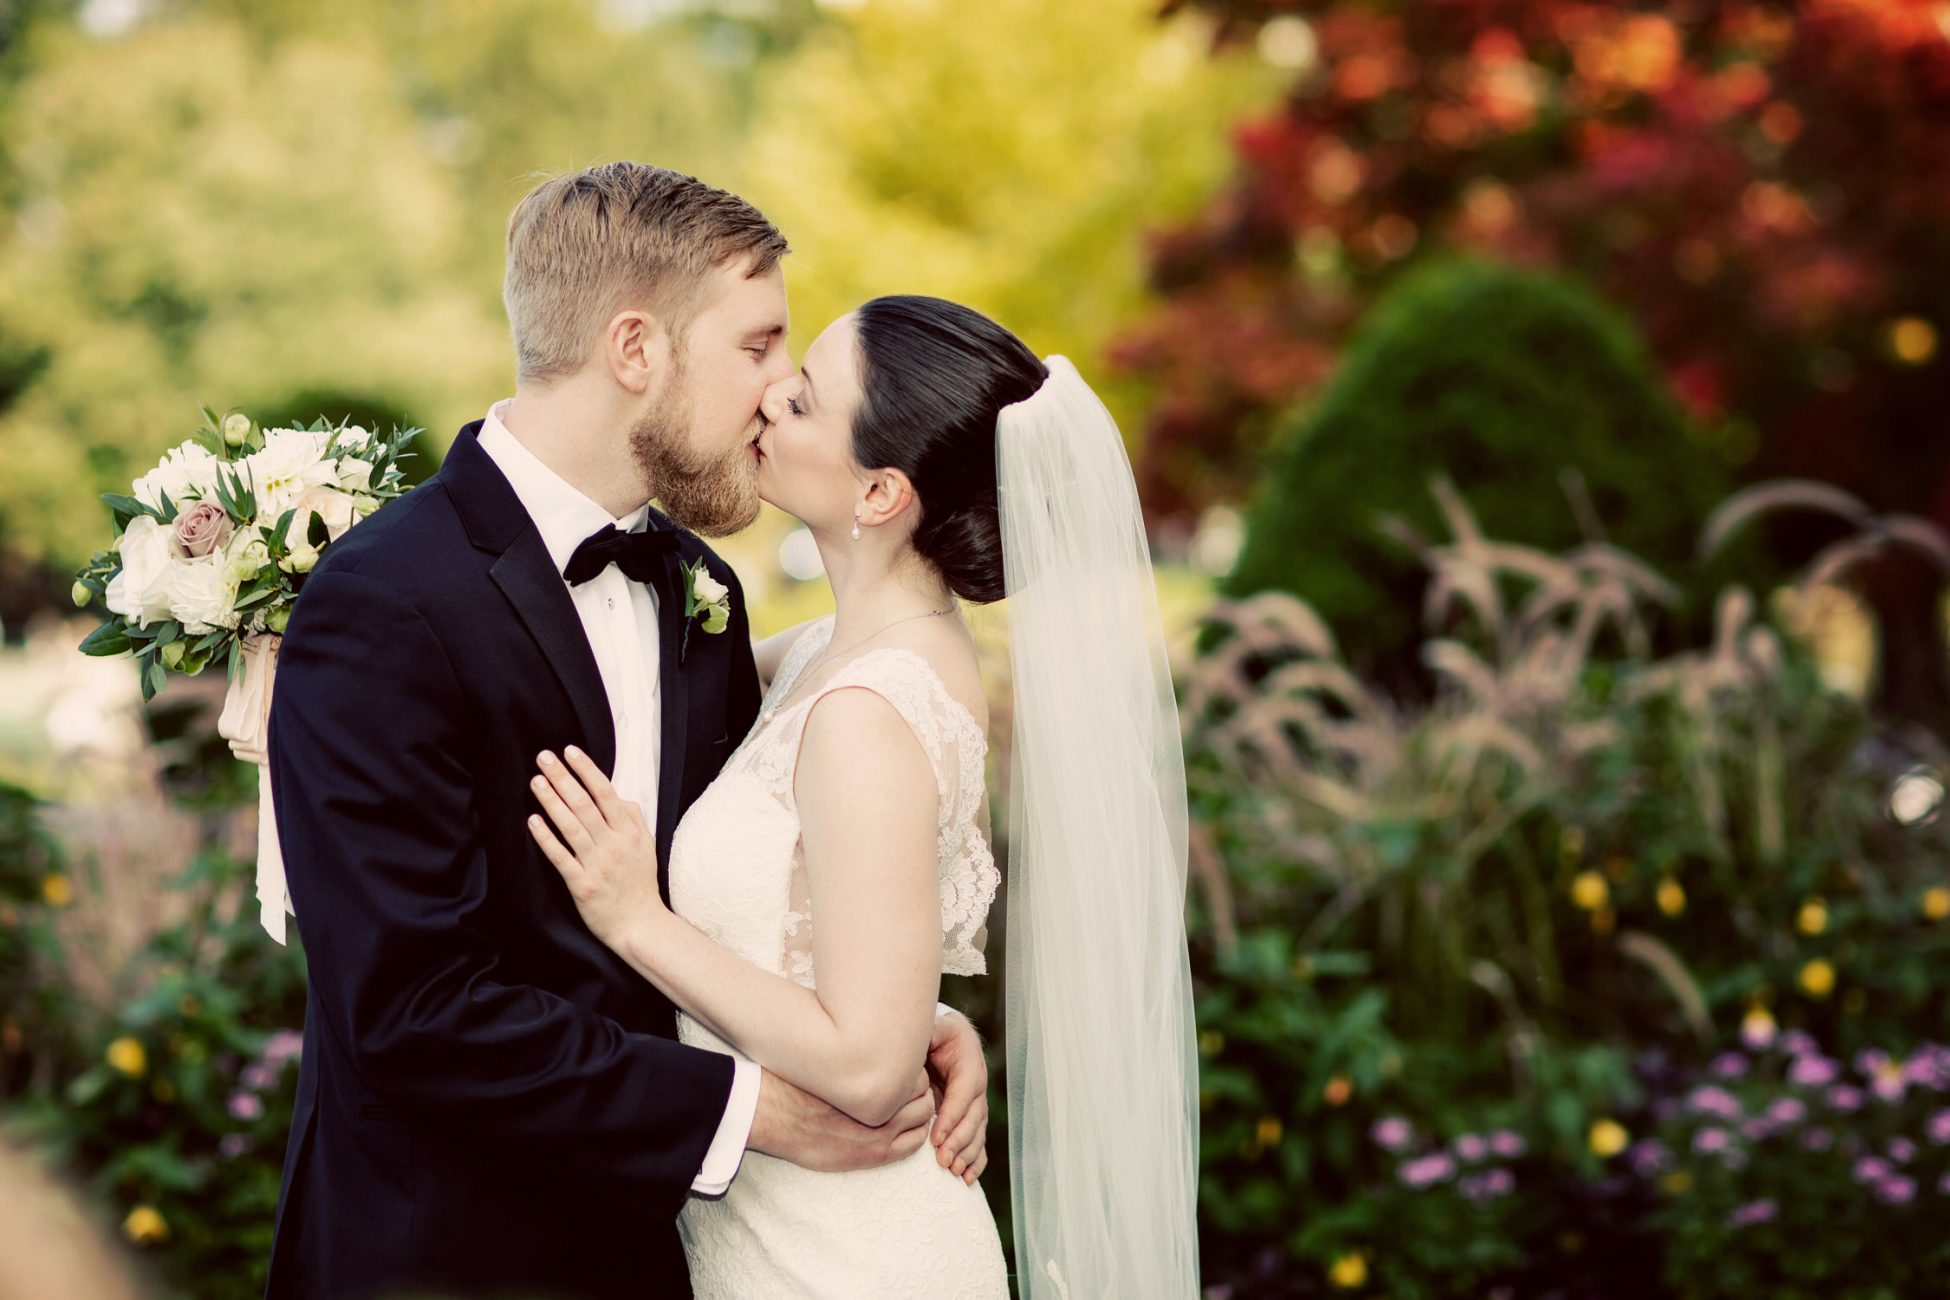 Photograph of Couple Kissing at their Wedding